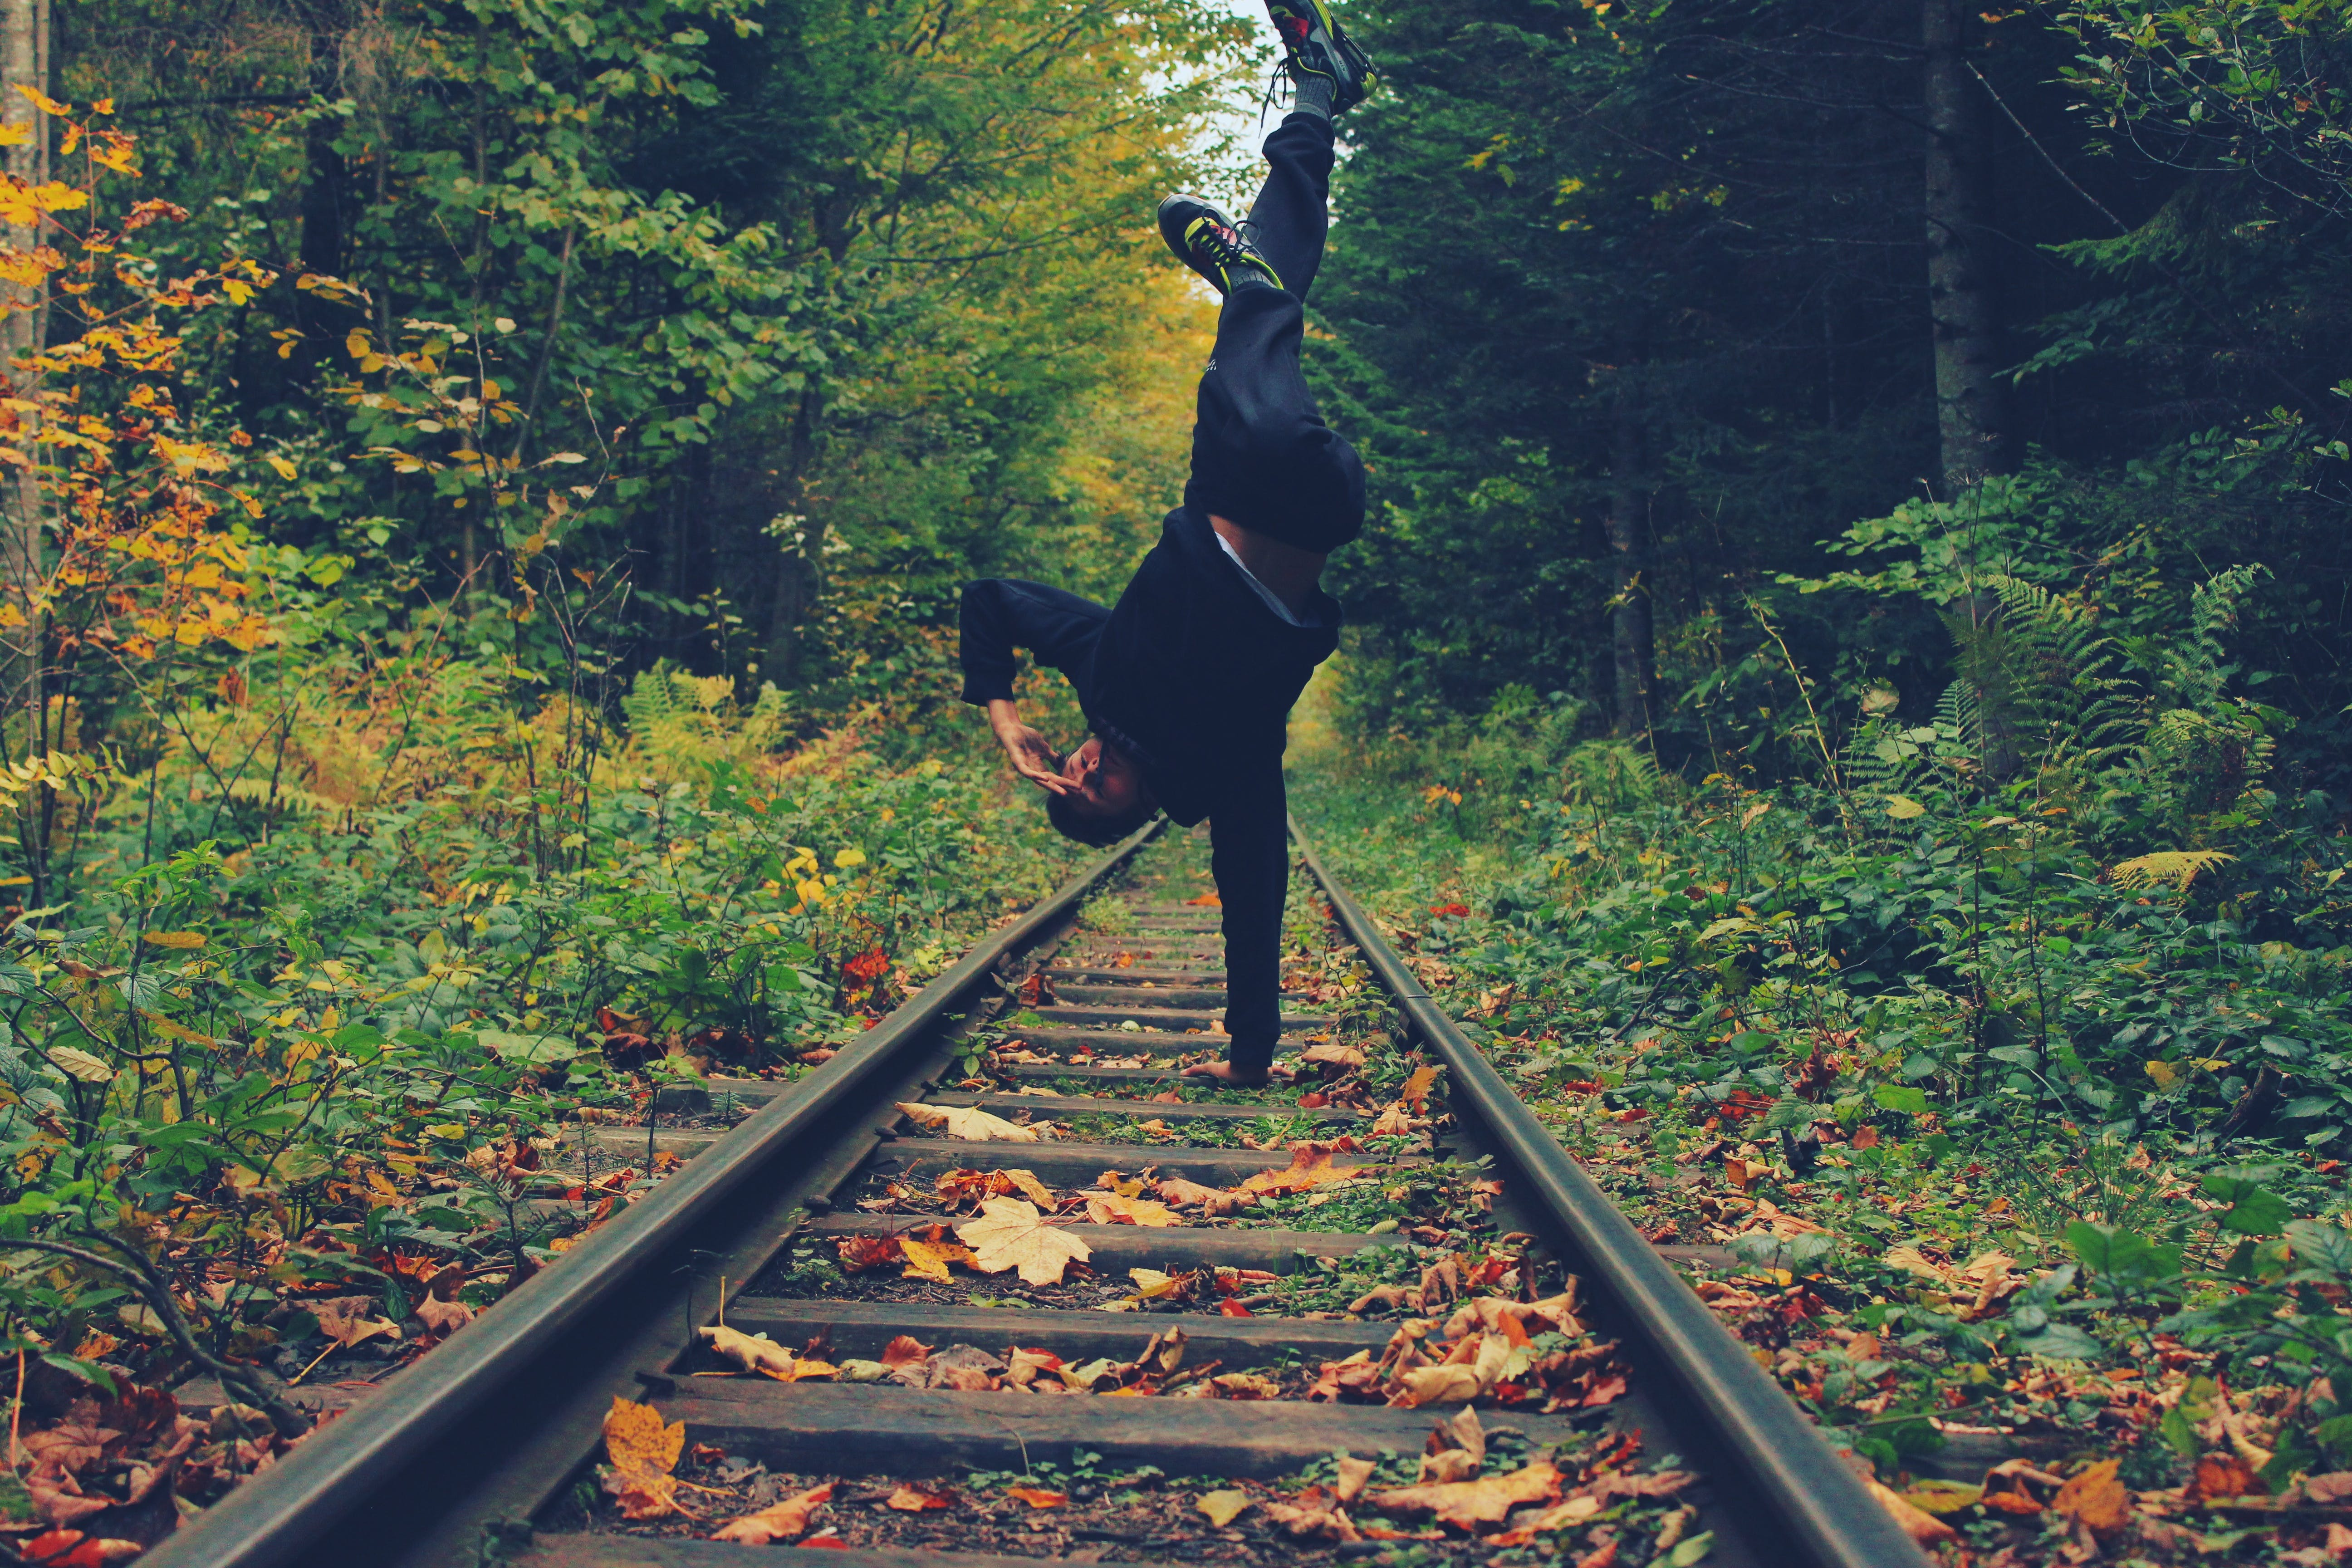 Man Standing With His Right Hand on the Train Rails in Middle of Forest